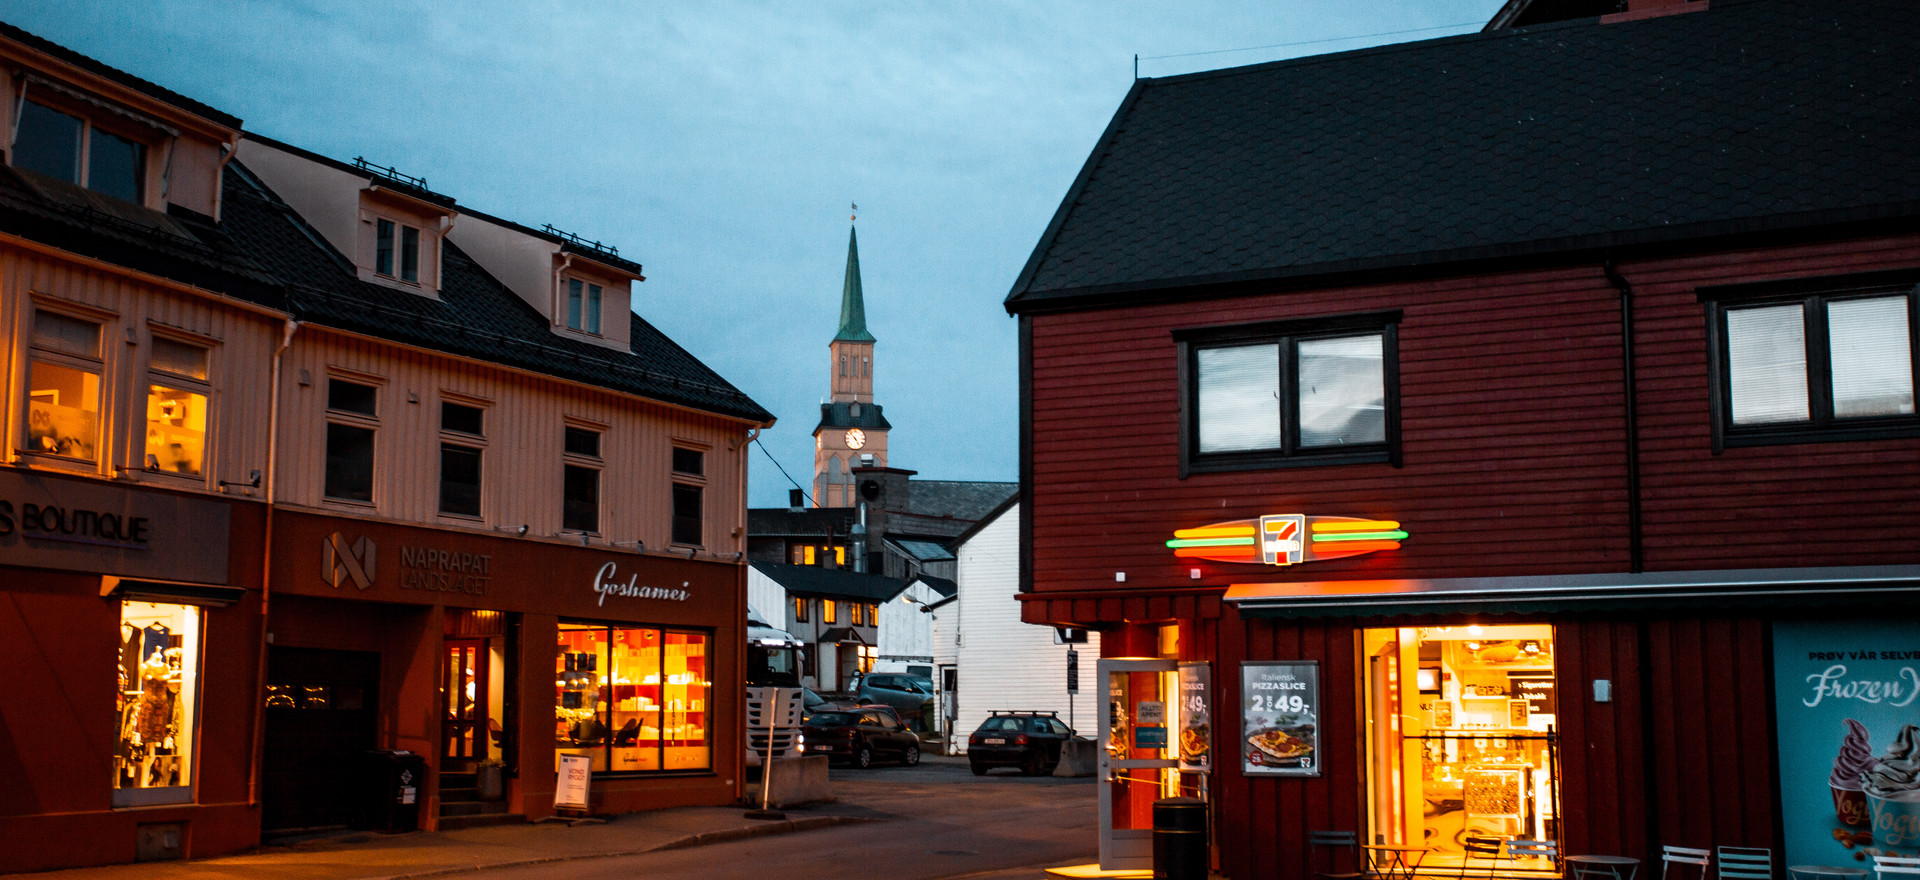 City of Tromso during blue hour